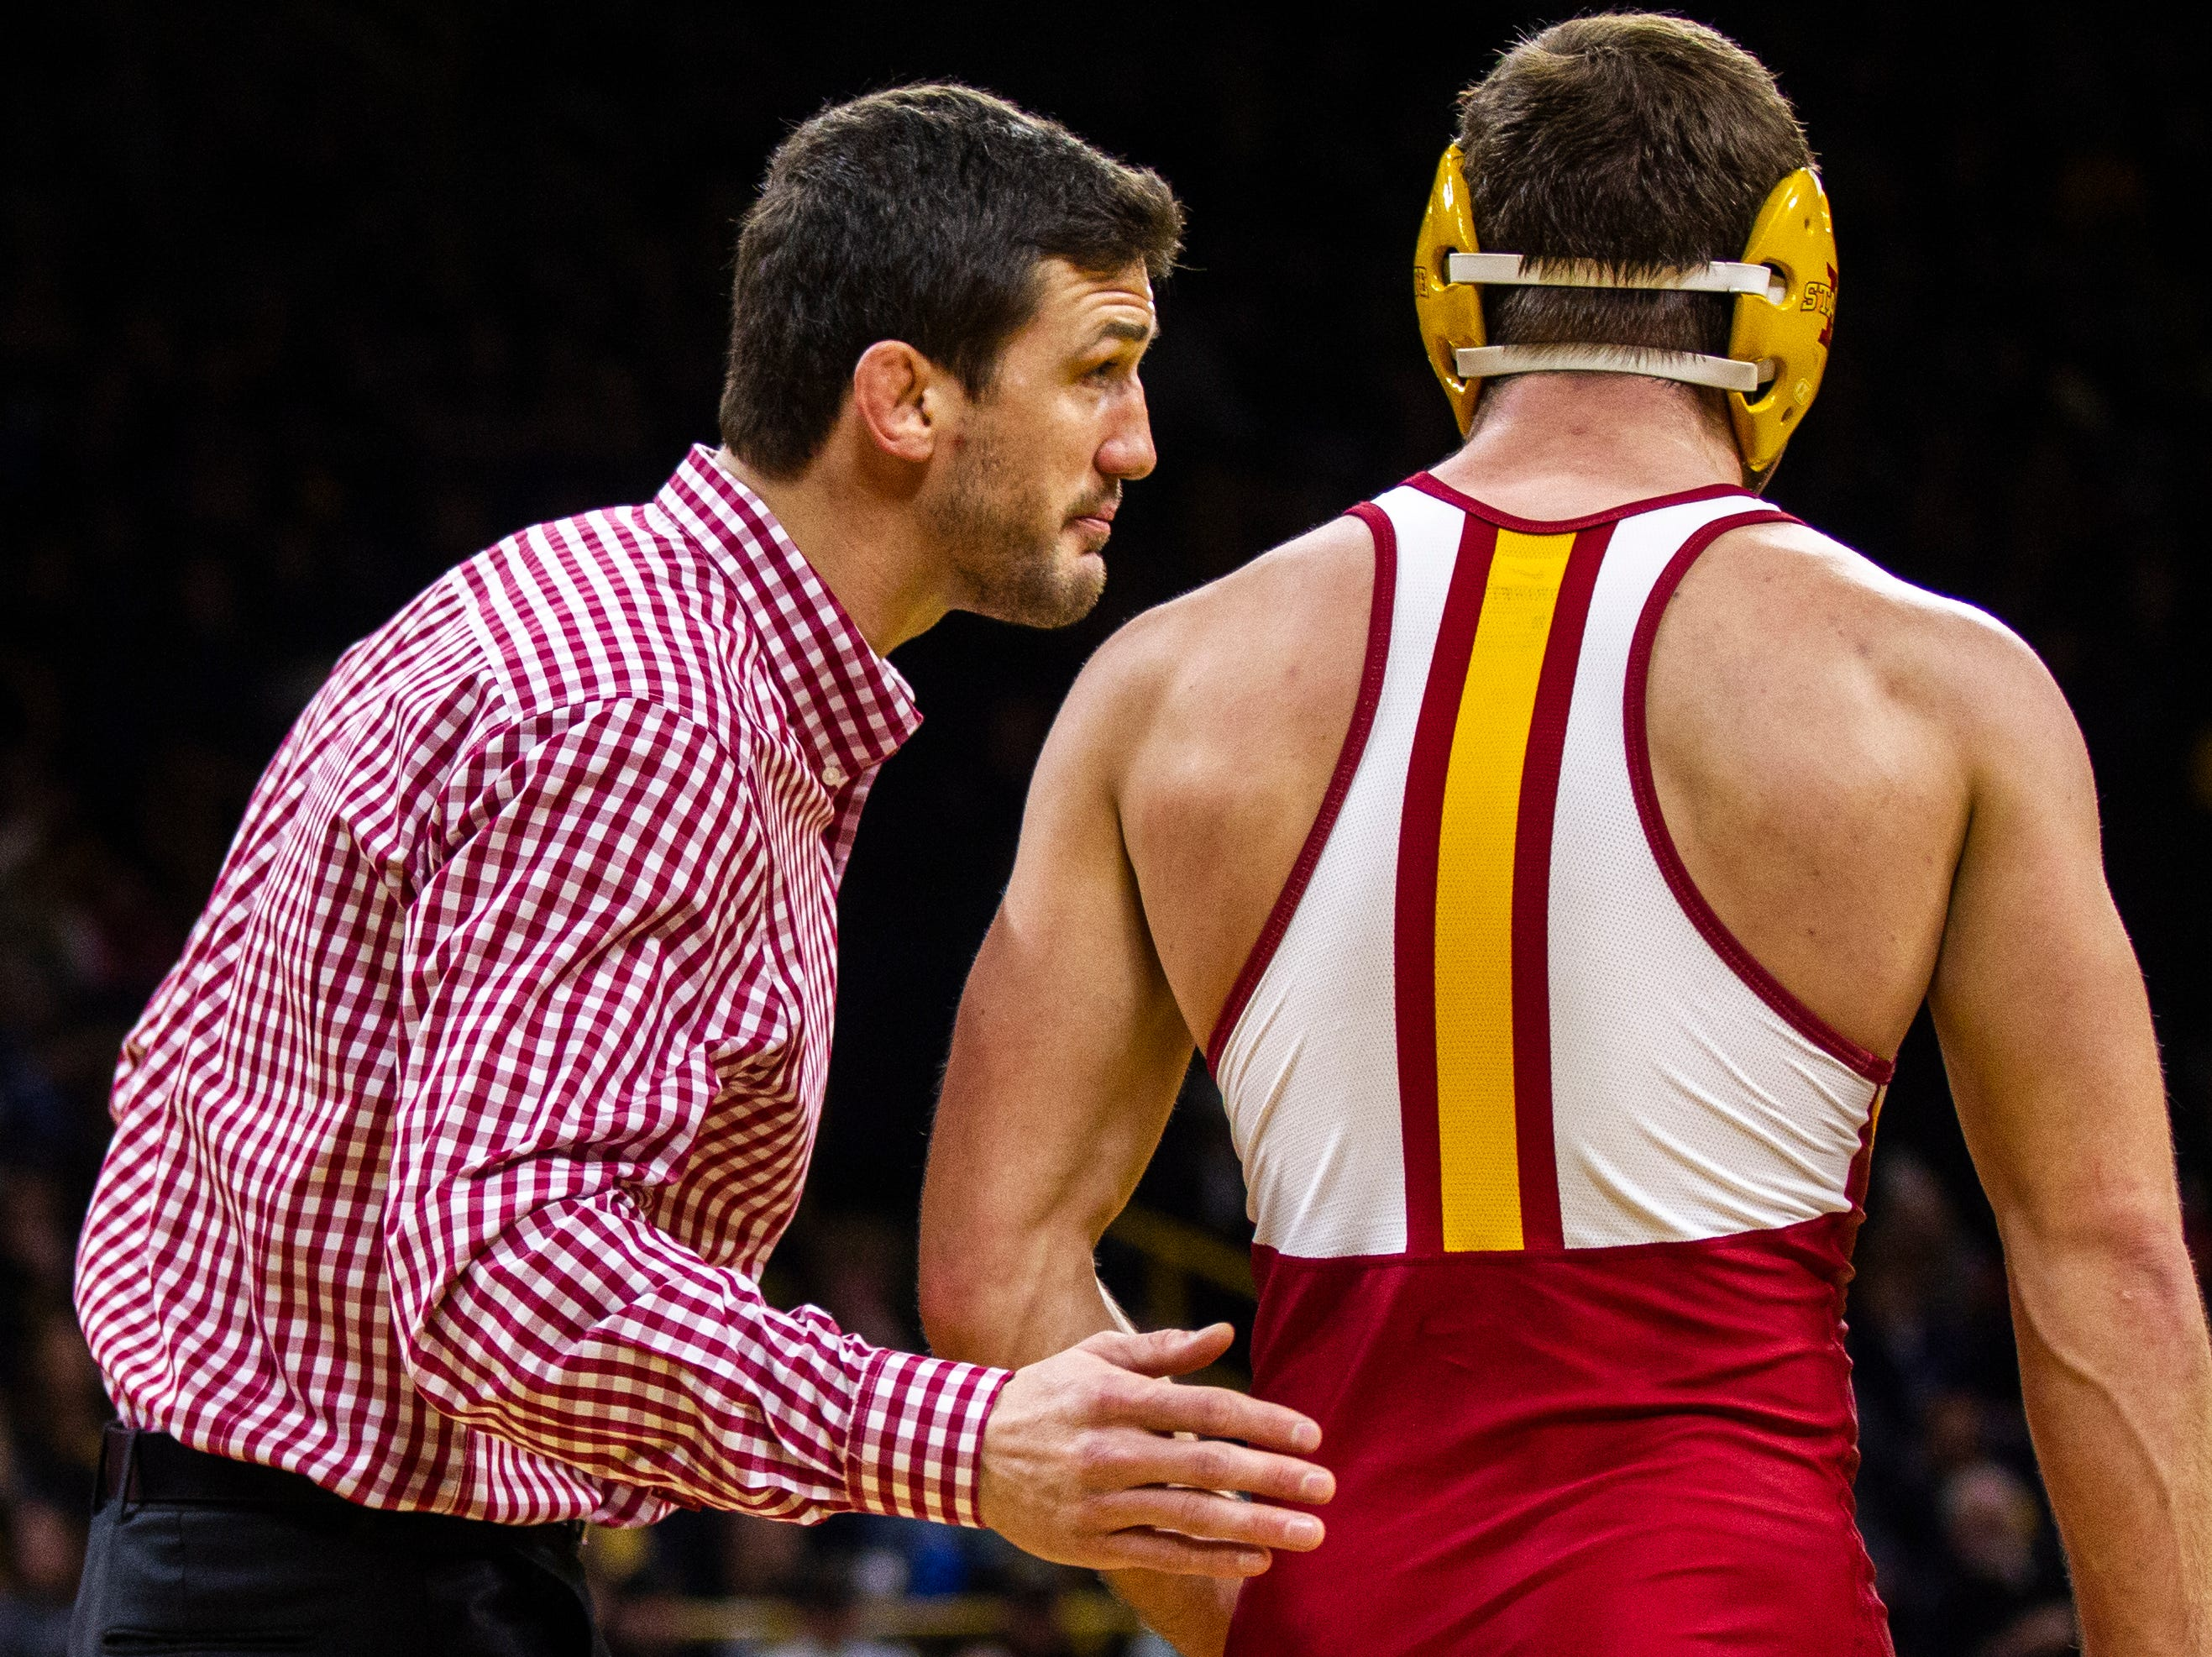 Iowa State assistant coach Derek St. John talks with Chase Straw during a NCAA Cy-Hawk series wrestling dual on Saturday, Dec. 1, 2018, at Carver-Hawkeye Arena in Iowa City.